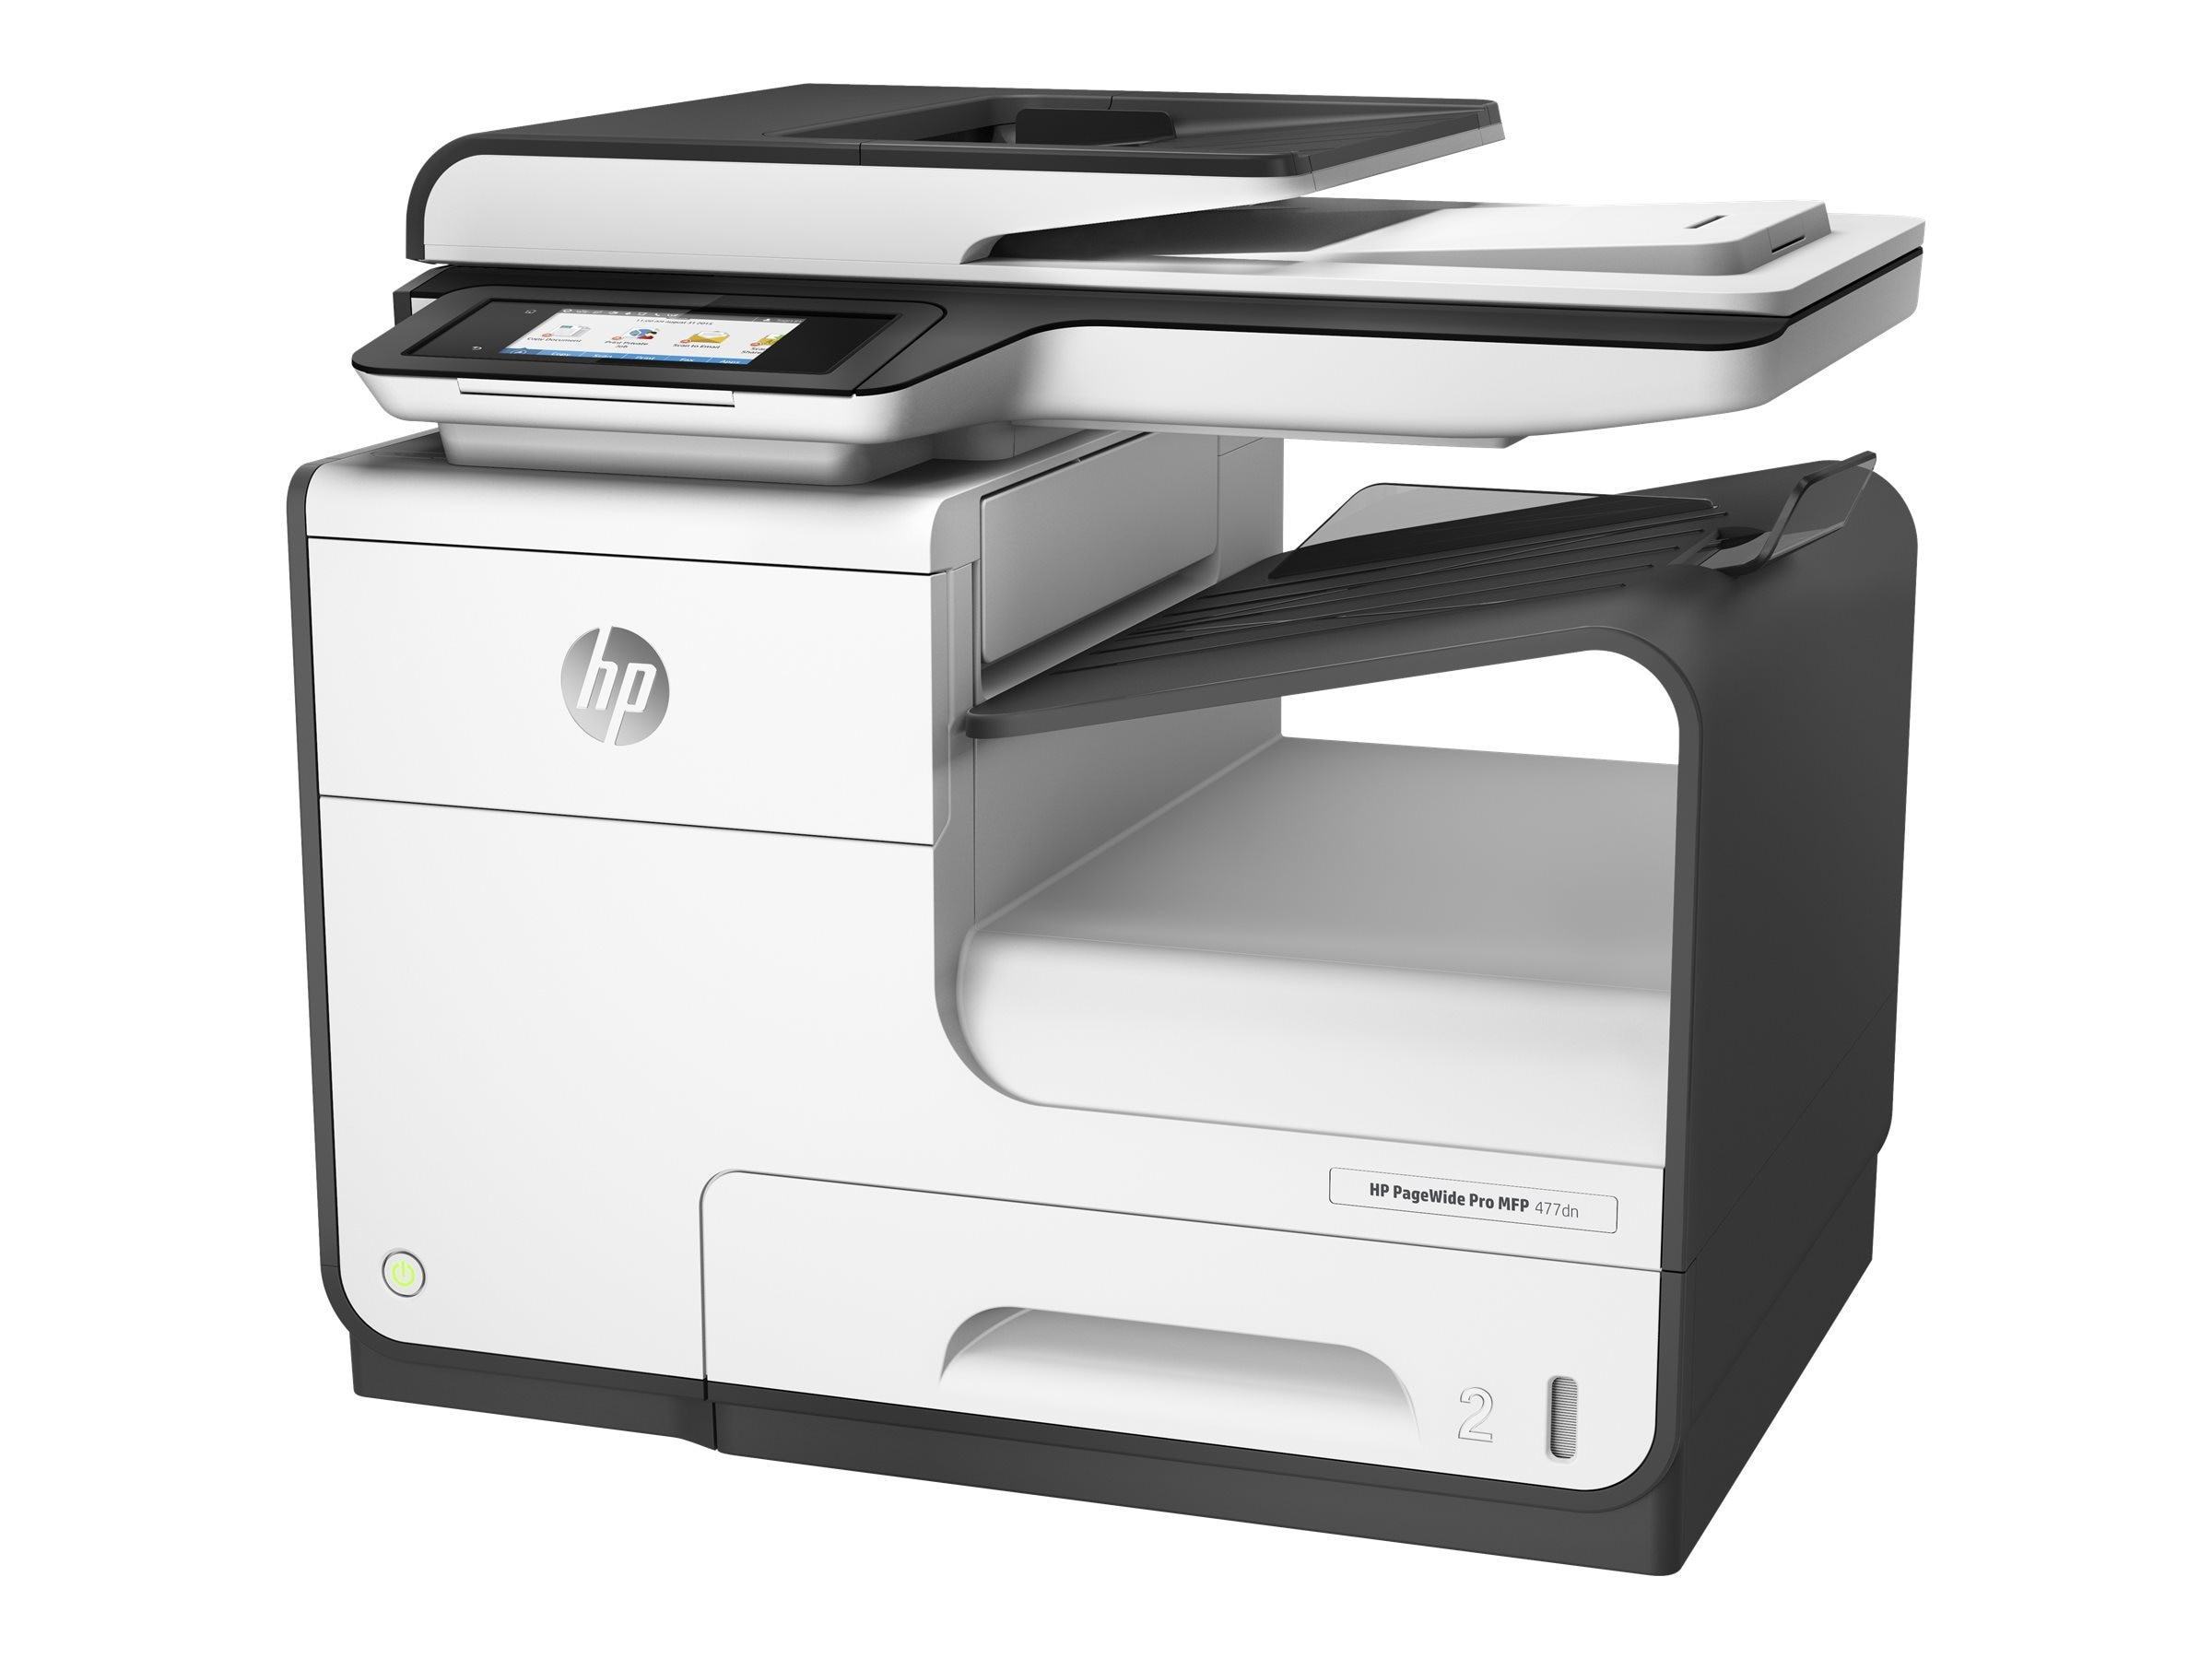 HP PageWide Pro 477dn Multifunction Printer ($699 - $70 Instant Rebate = $629 Expires 12 31 16)